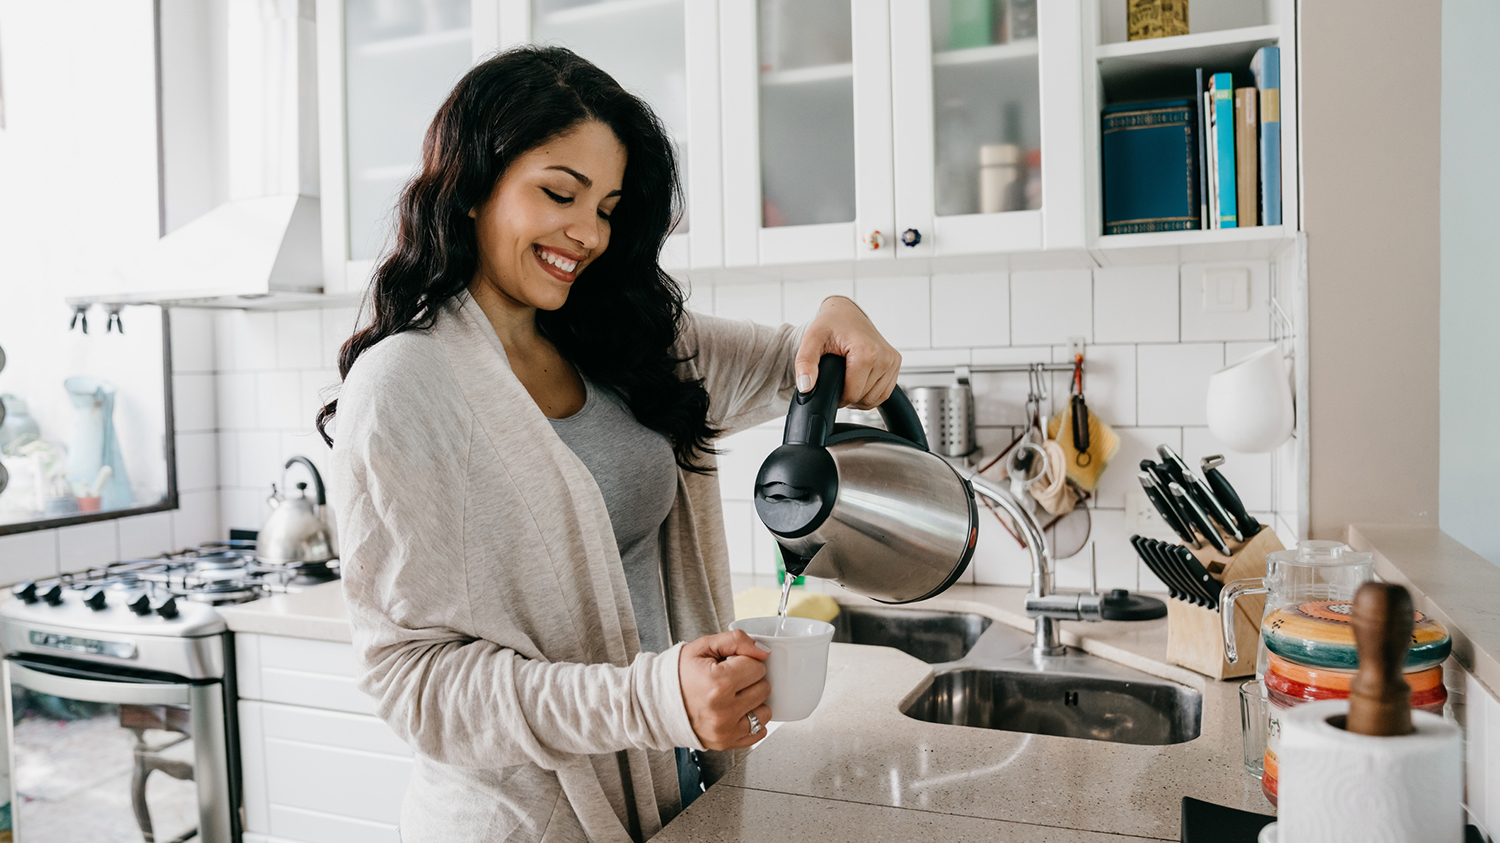 6 Electric Kettles That Will Up Your Tea-Making Game